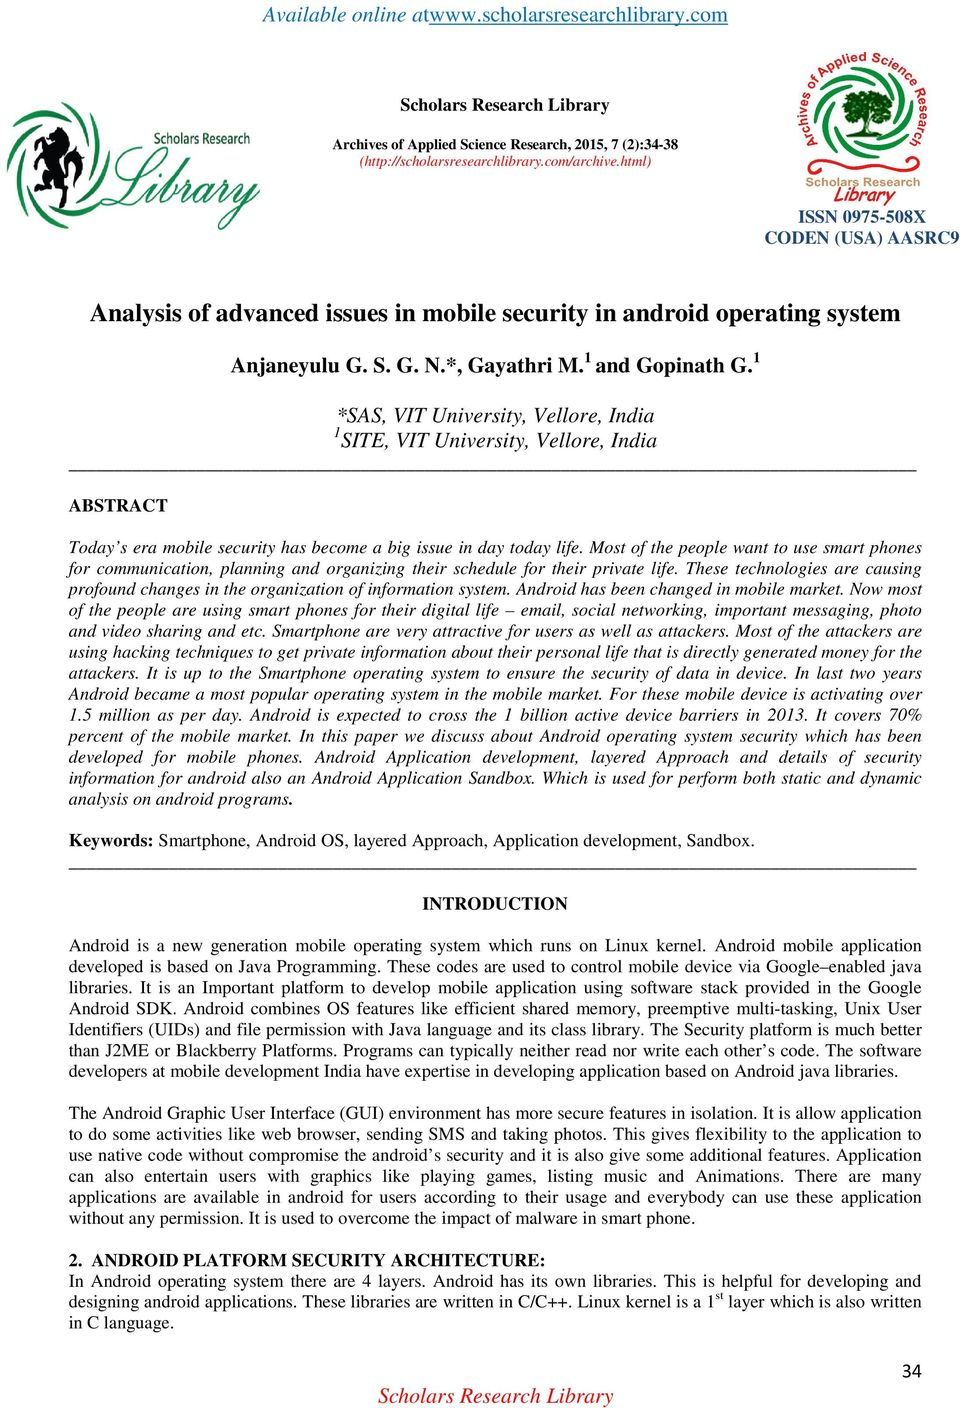 Analysis of advanced issues in mobile security in android